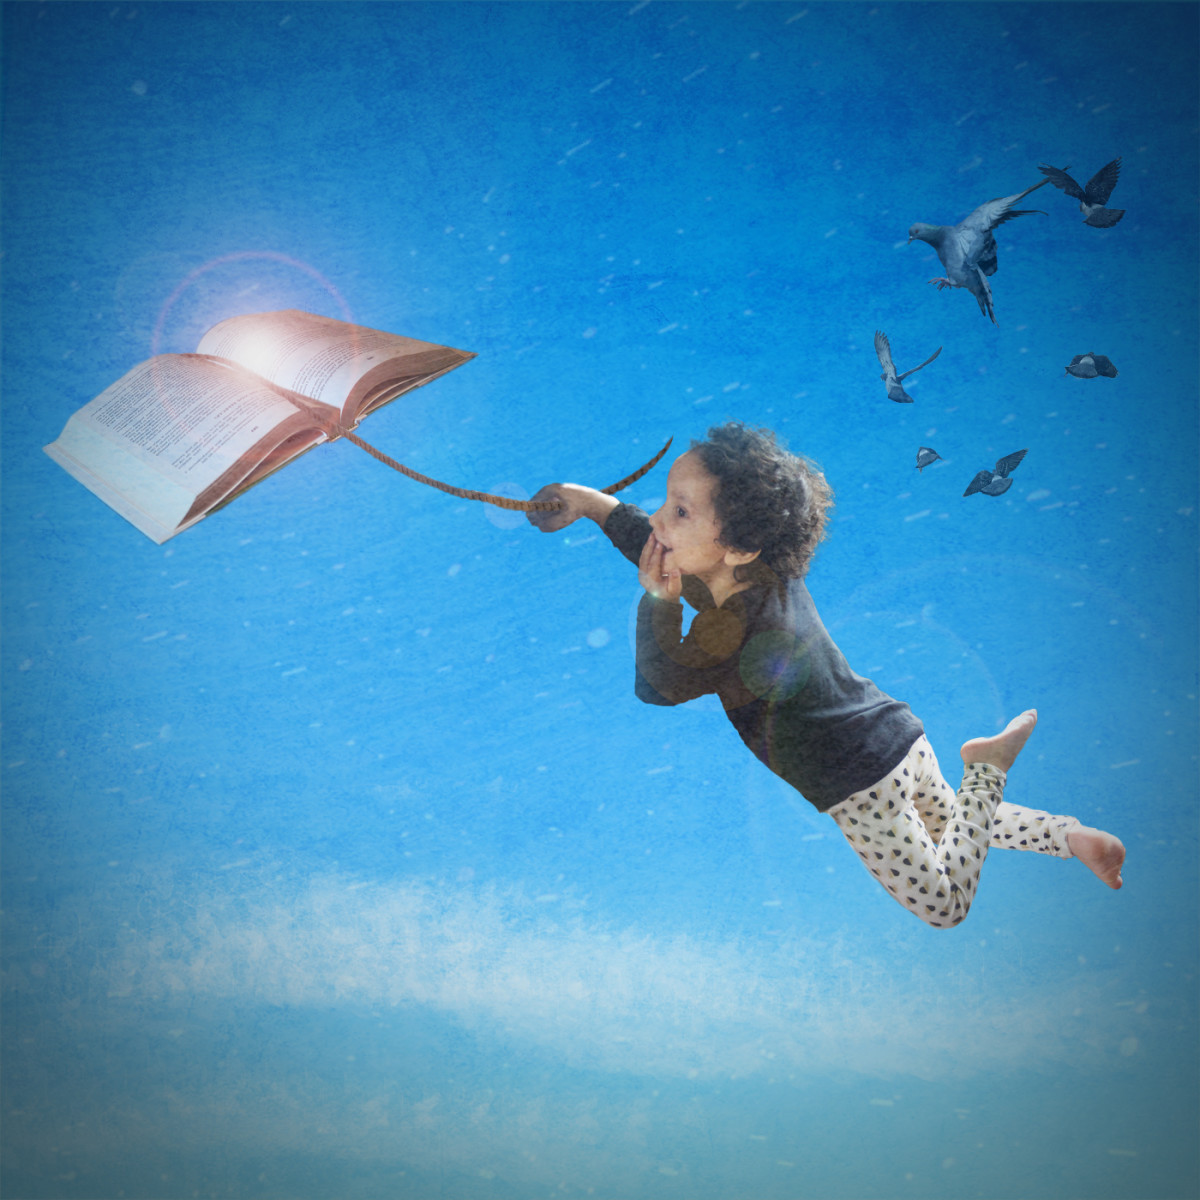 Another in my series Encouraging Children in the Adventure of Reading.